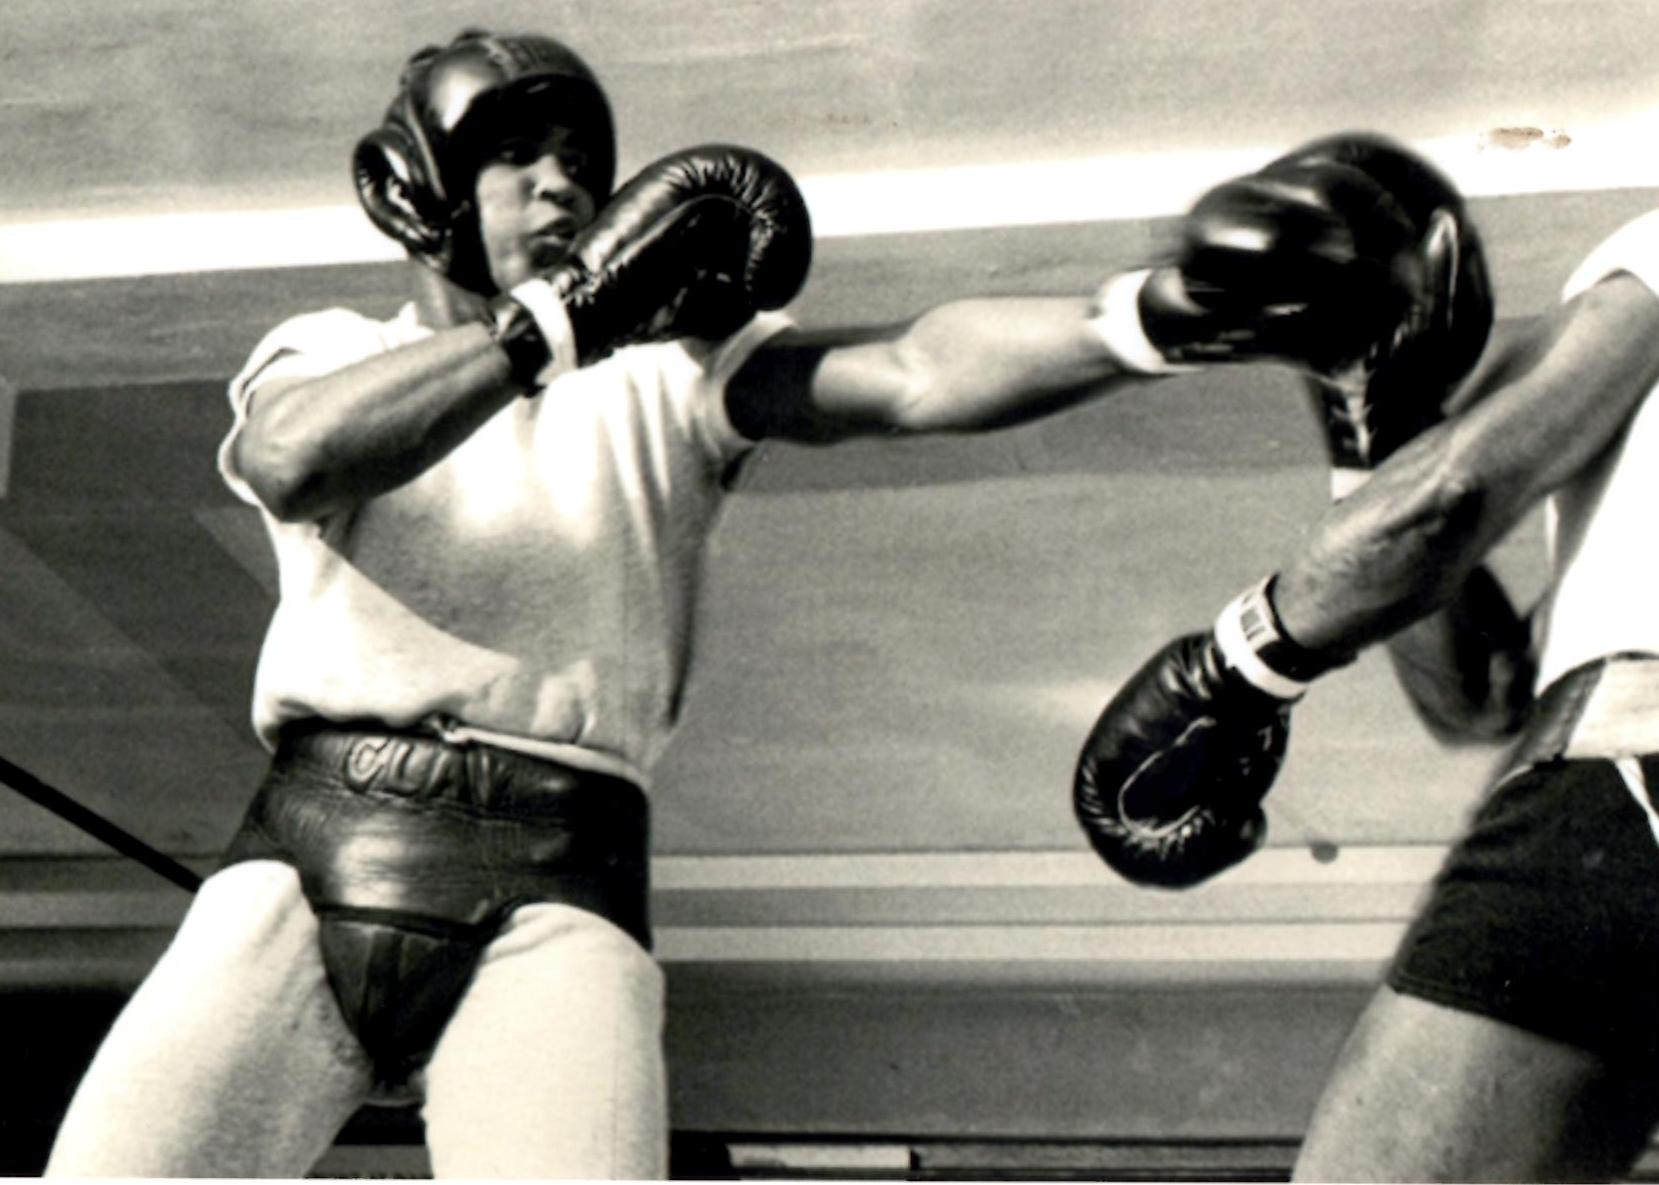 Muhammad Ali (then known as Cassius Clay) training in Miami Beach Gym